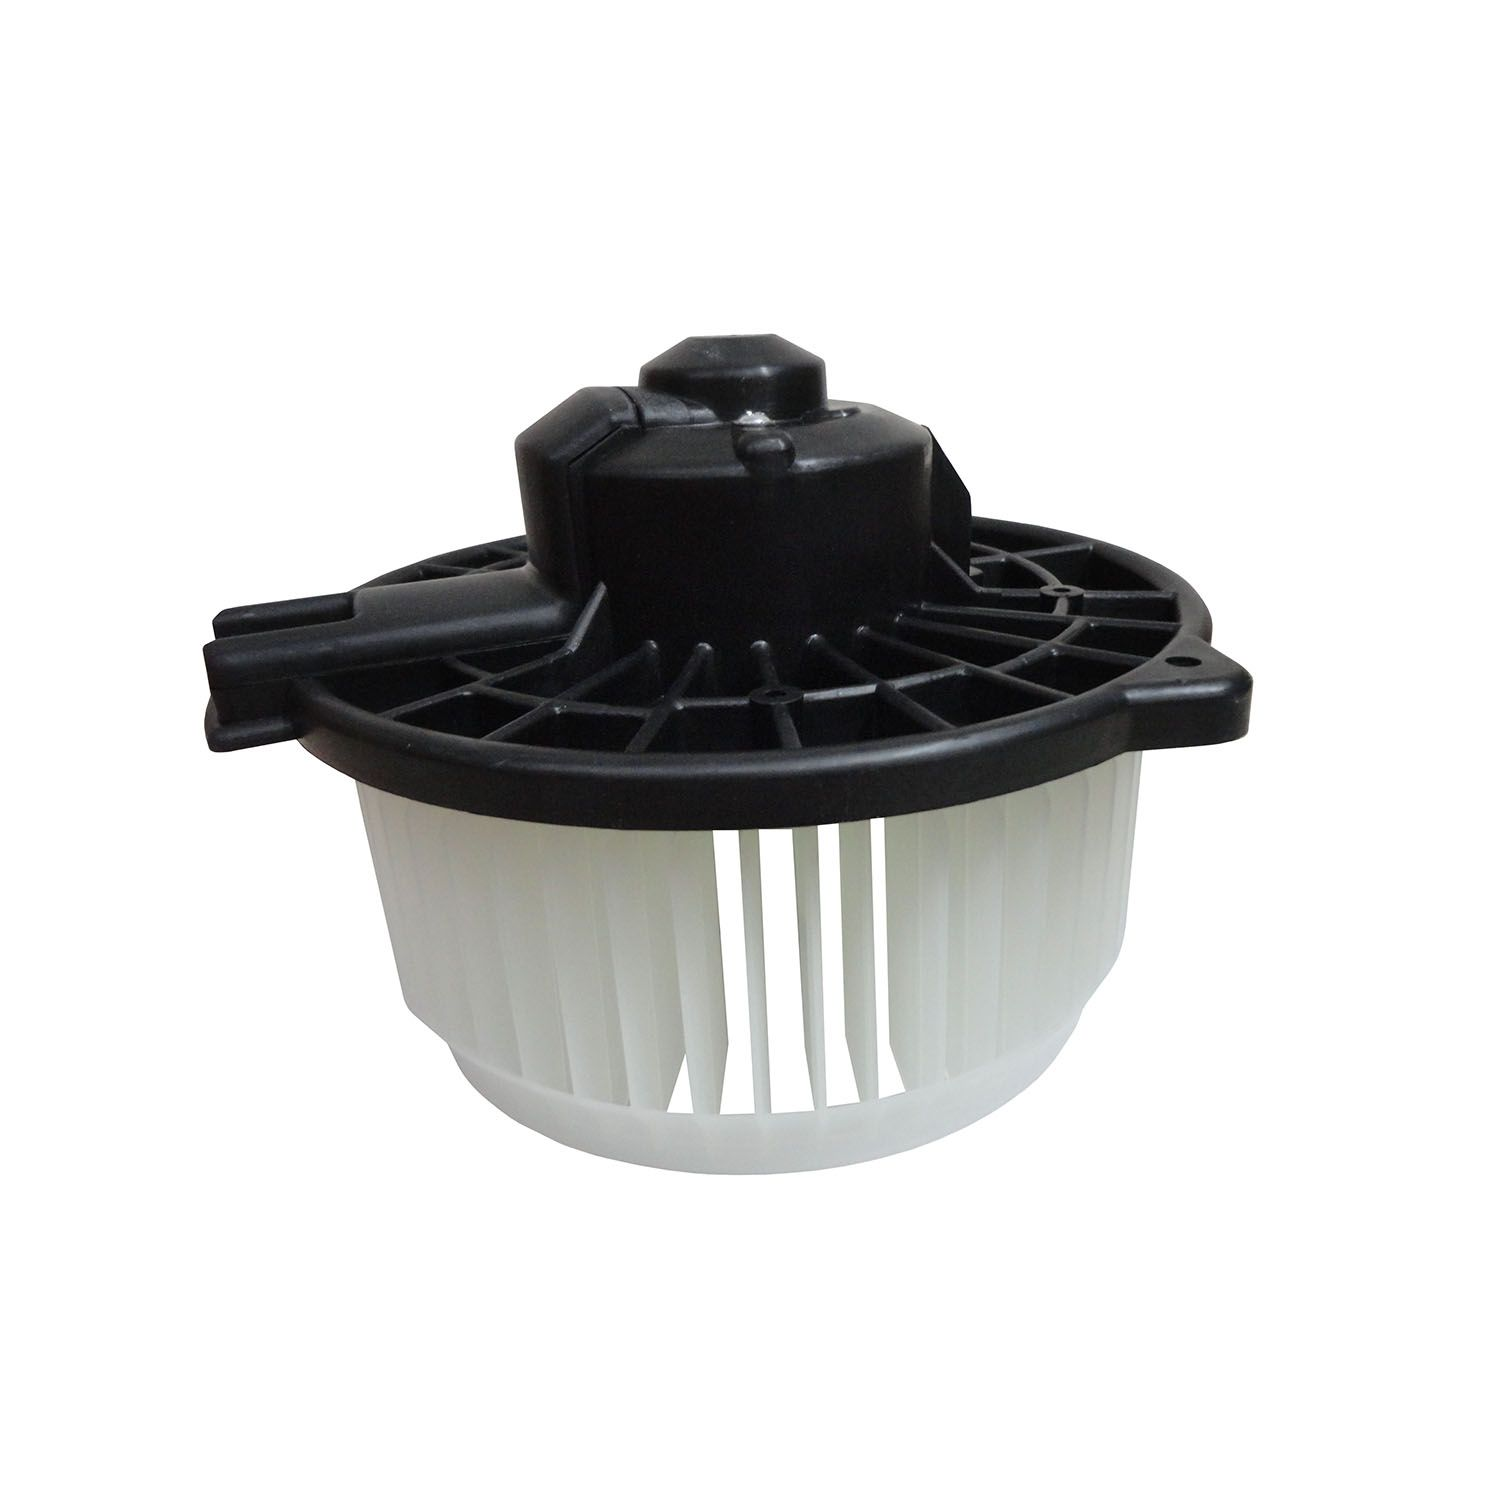 Ventilador Interno do Honda Civic - 12 V